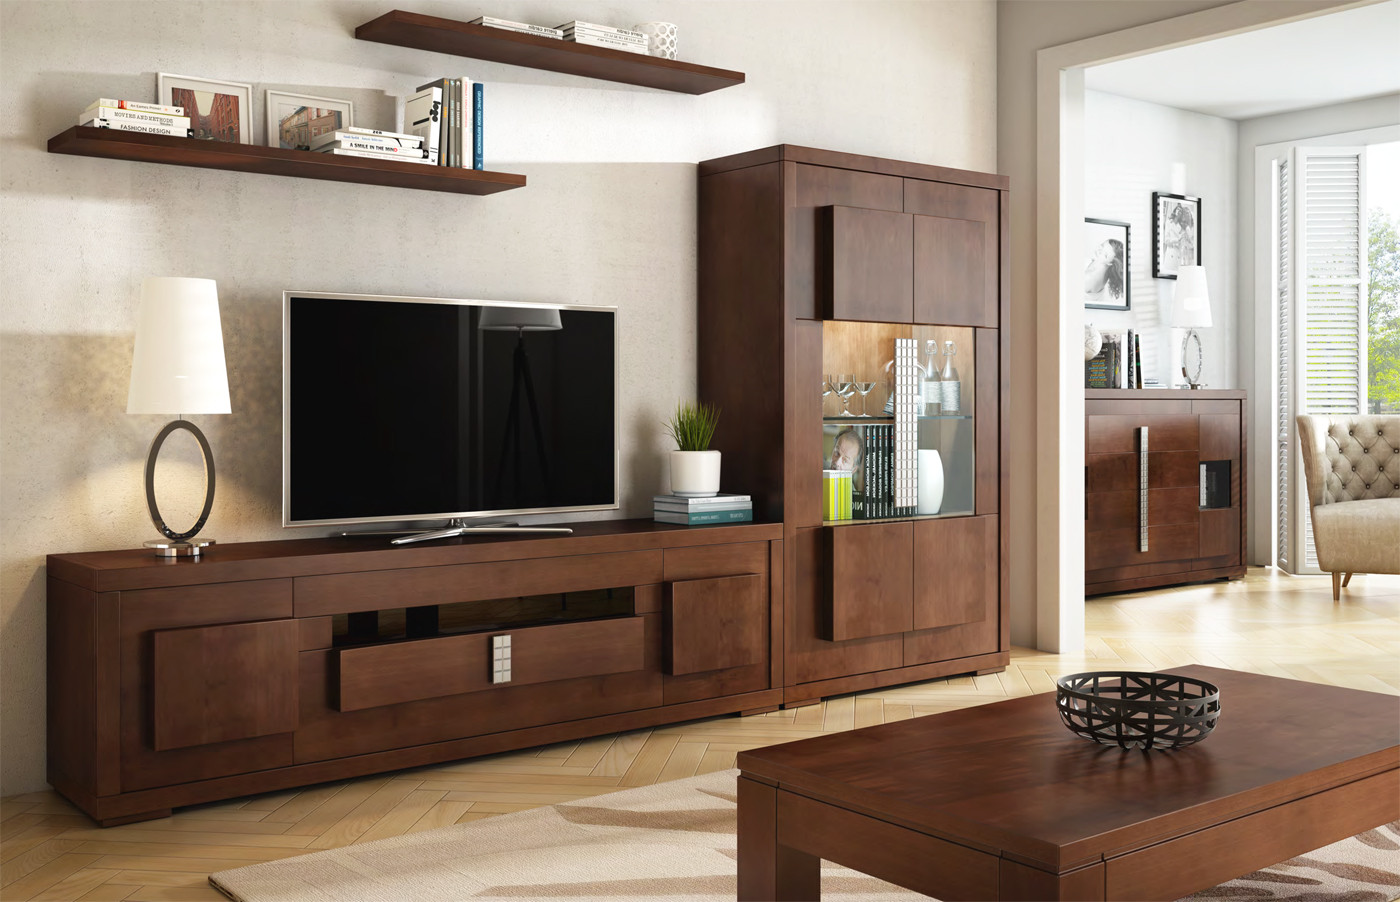 Mueble para televisi n de plasma de gran tama o for Muebles y decoracion online outlet